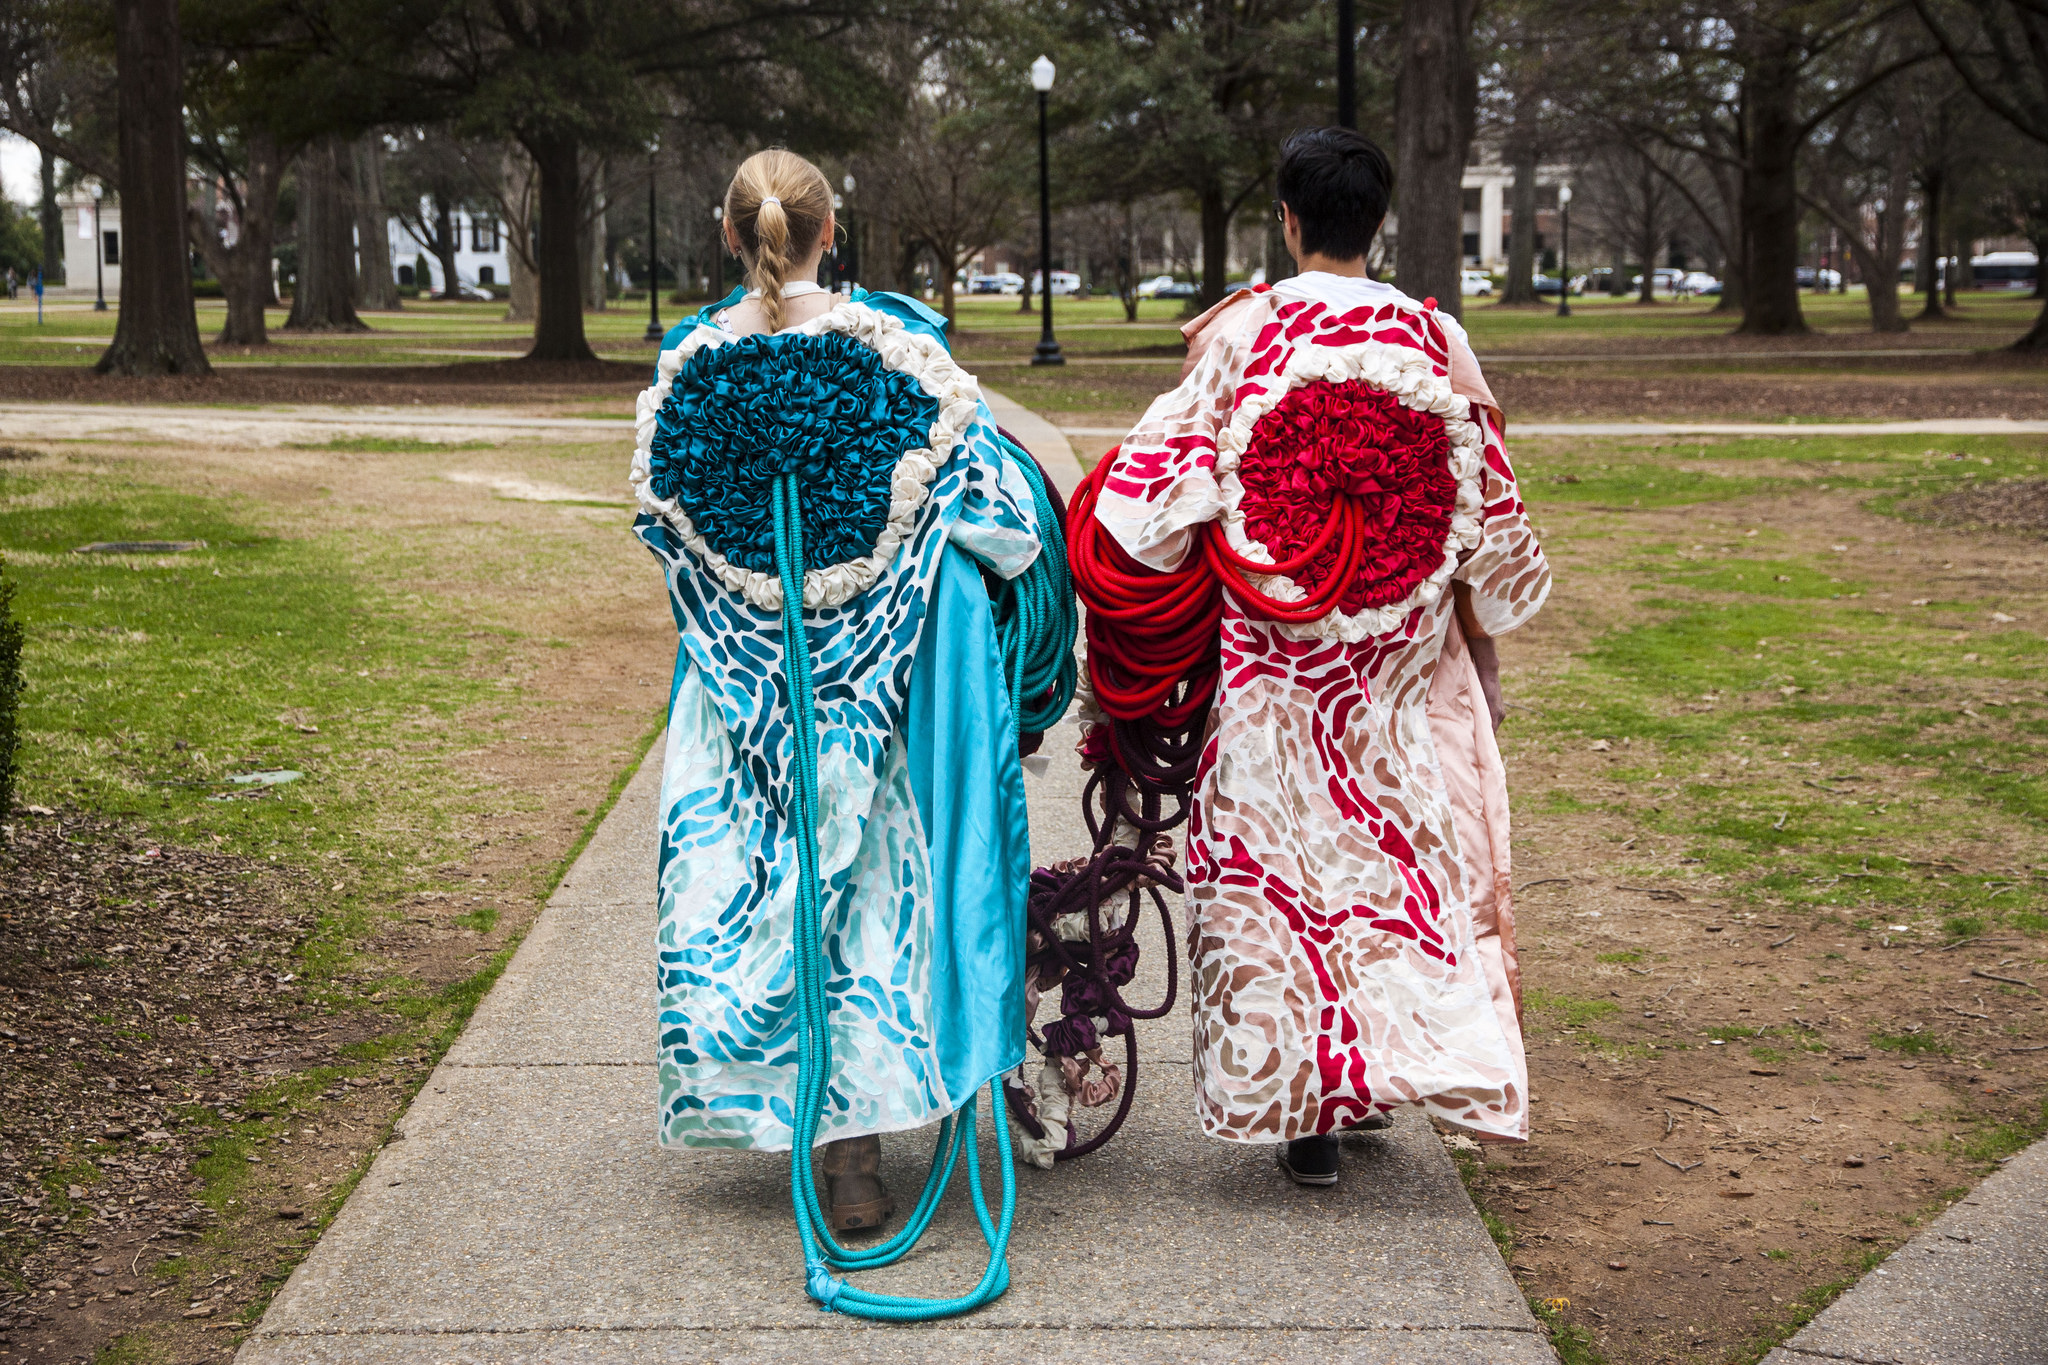 Together / Apart, 2015 . Performance. Cotton piping, fabric, macrame, hot glue.